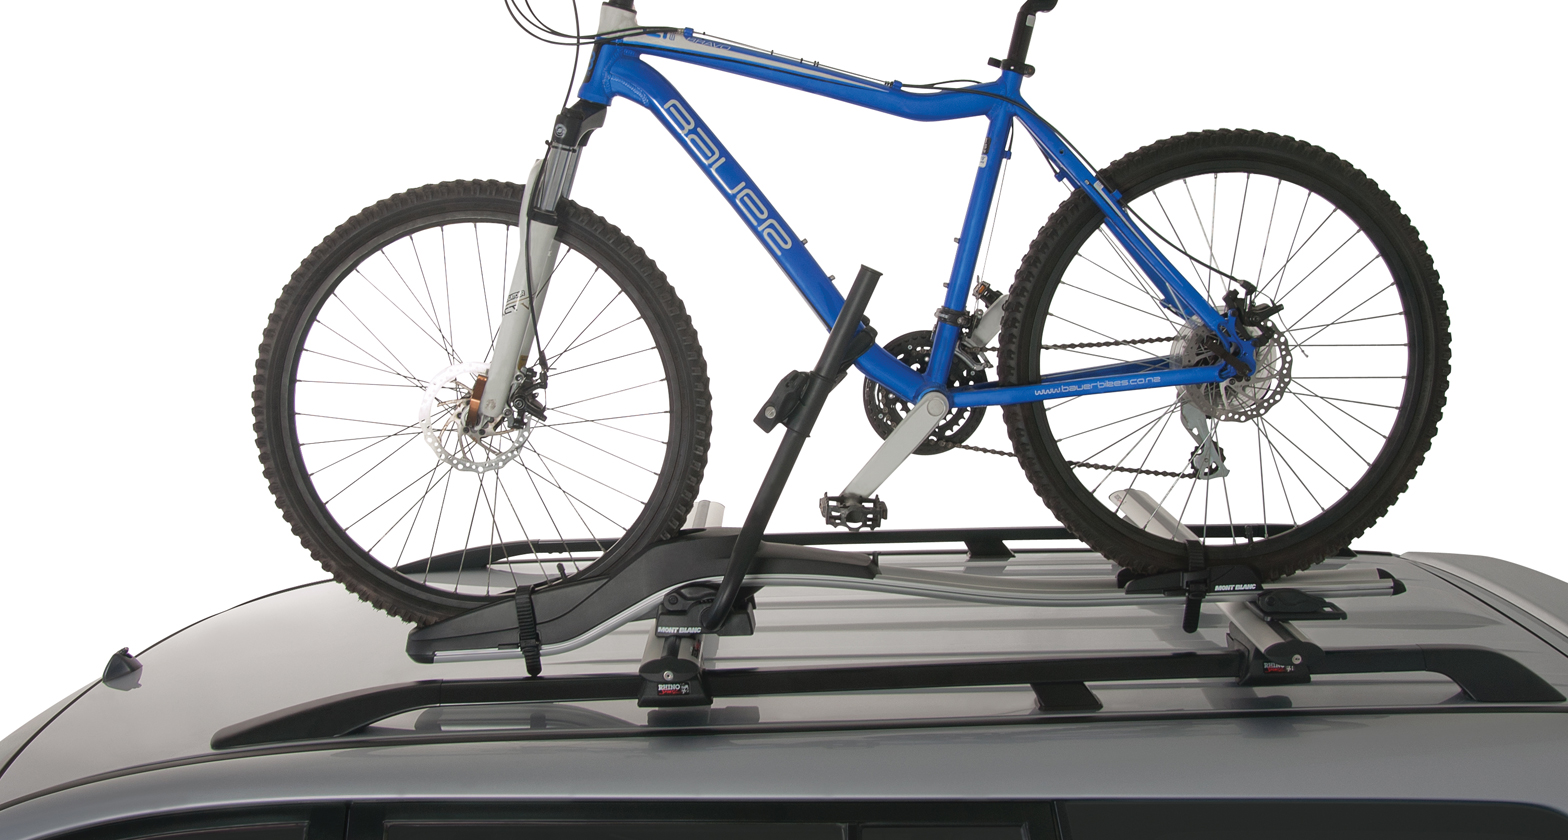 Roof bar bike carrier